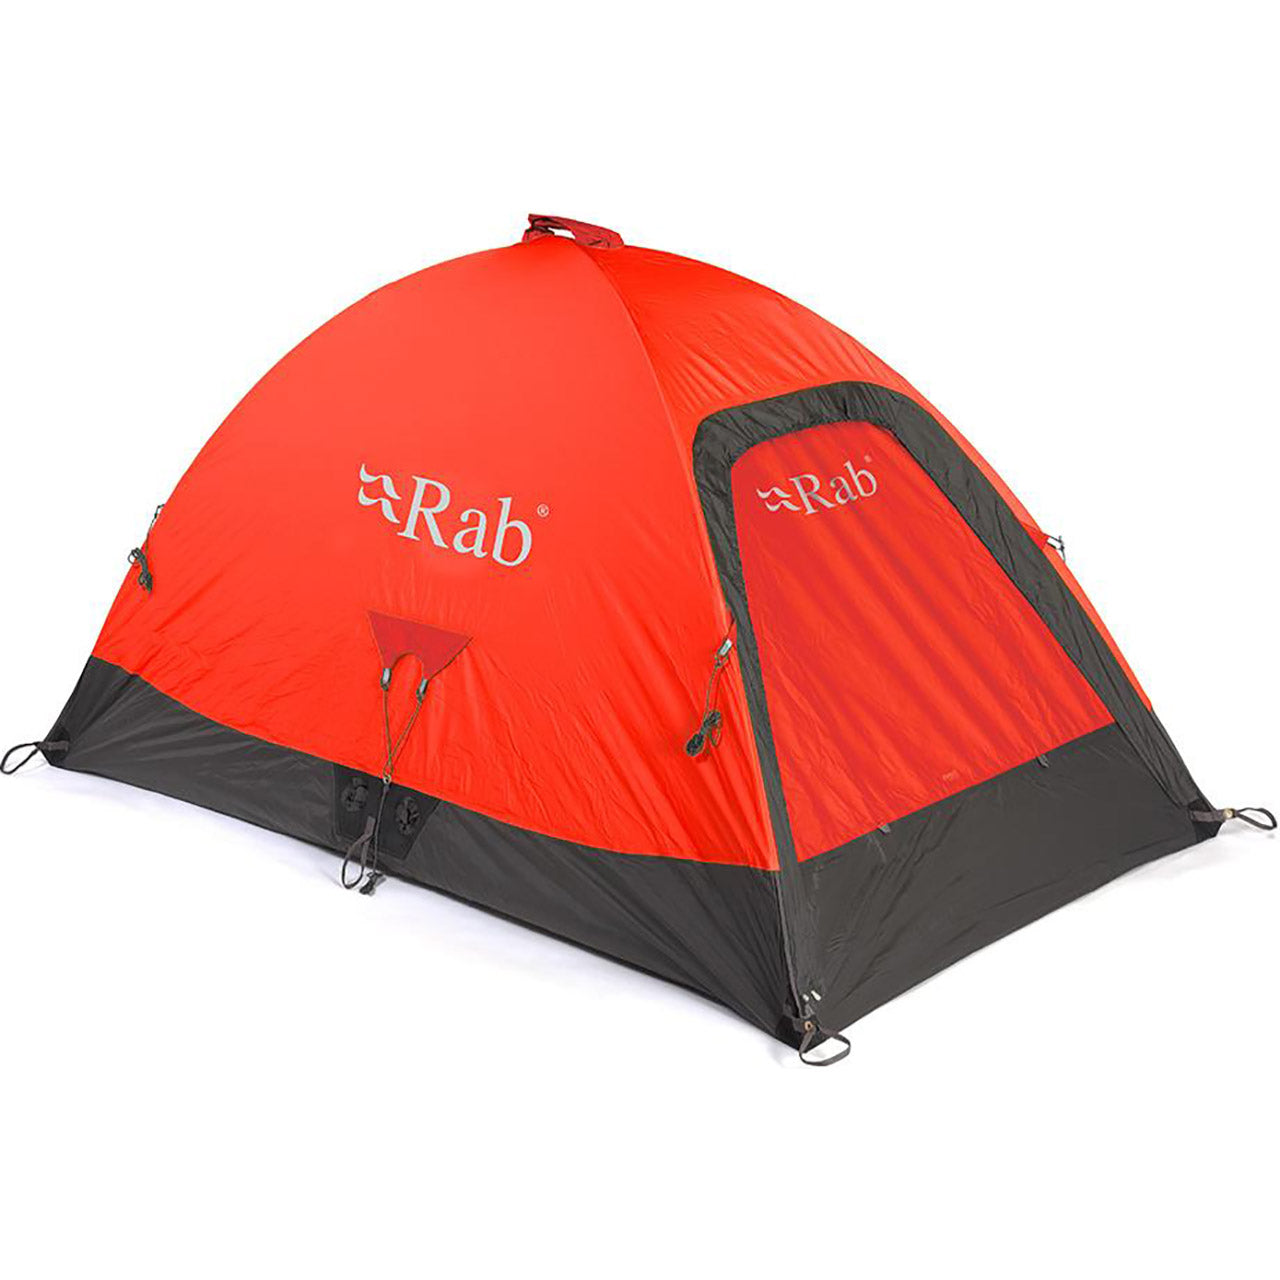 Rab Latok Mountain 3-Person, 4-Season Mountaineering Tent